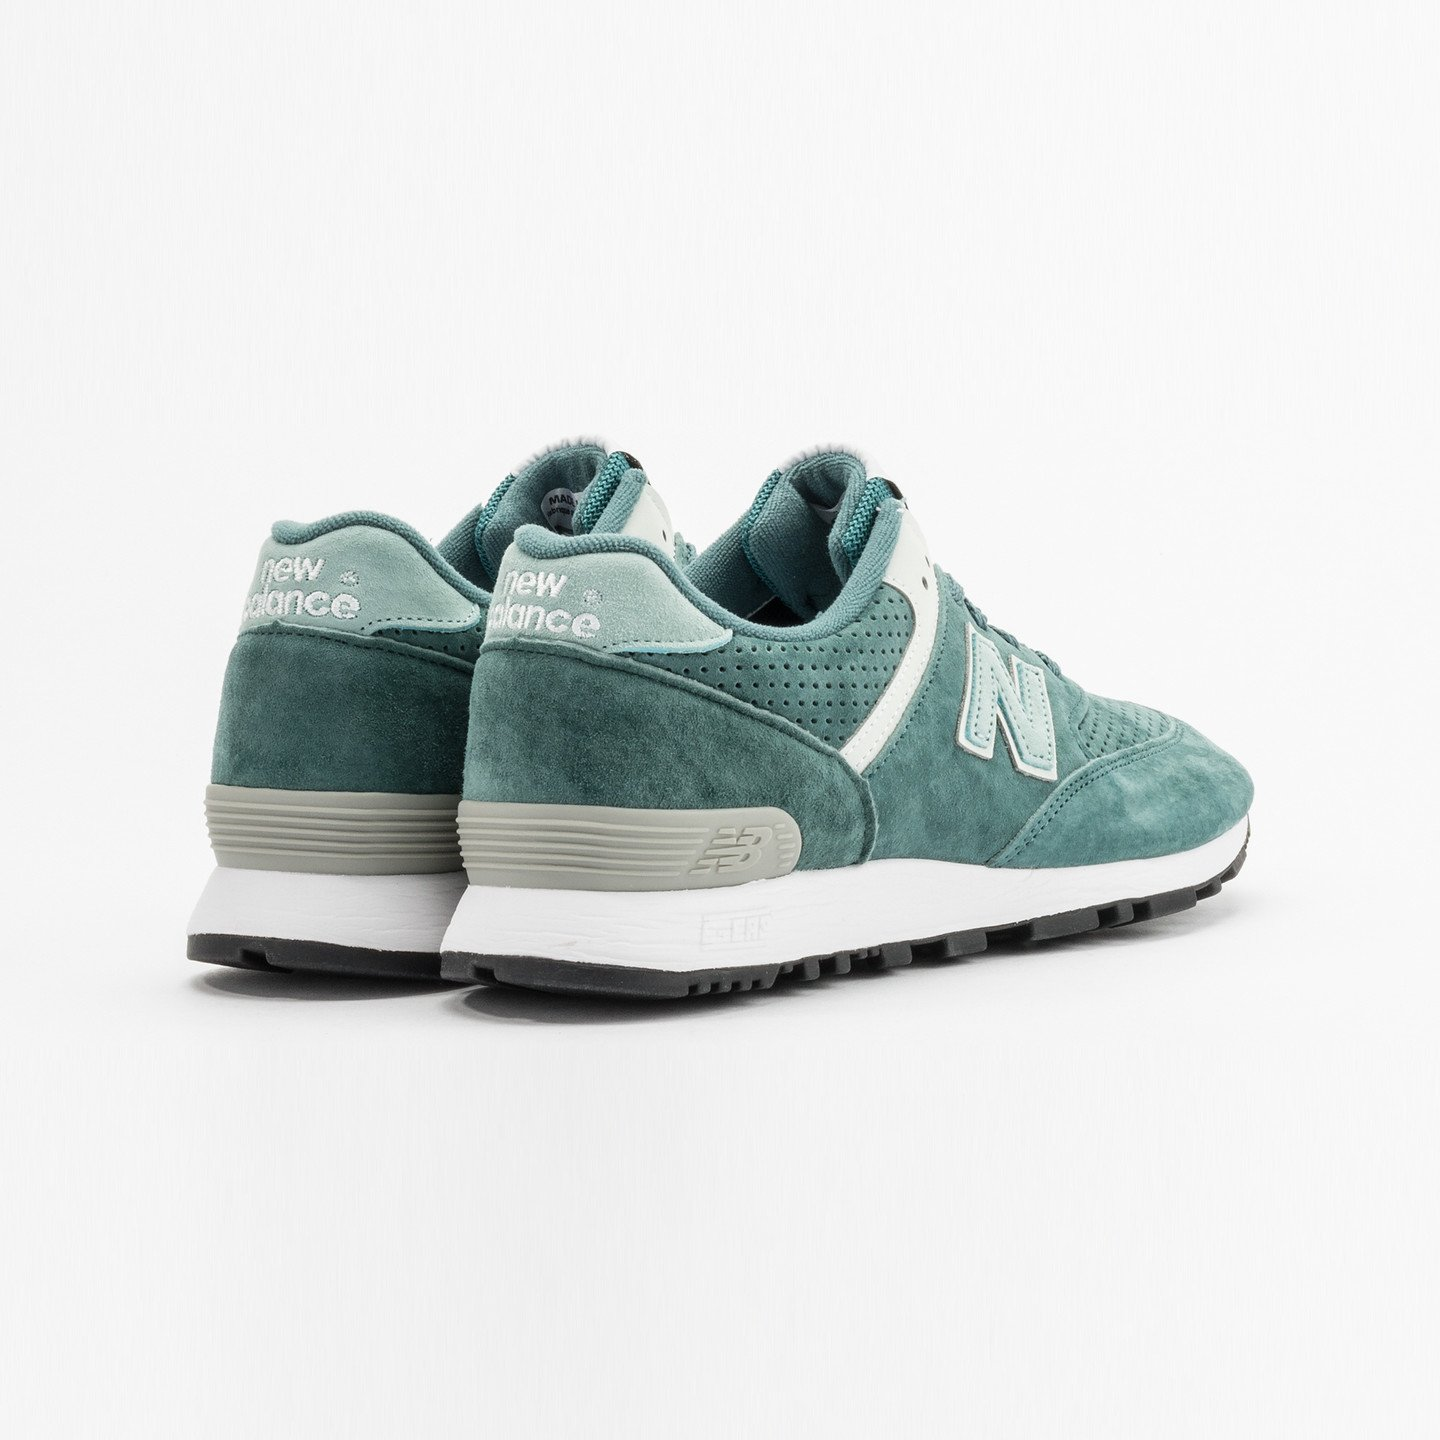 New Balance W 576 PMM - Made in UK Ocean Turquoise W576PMM-40.5